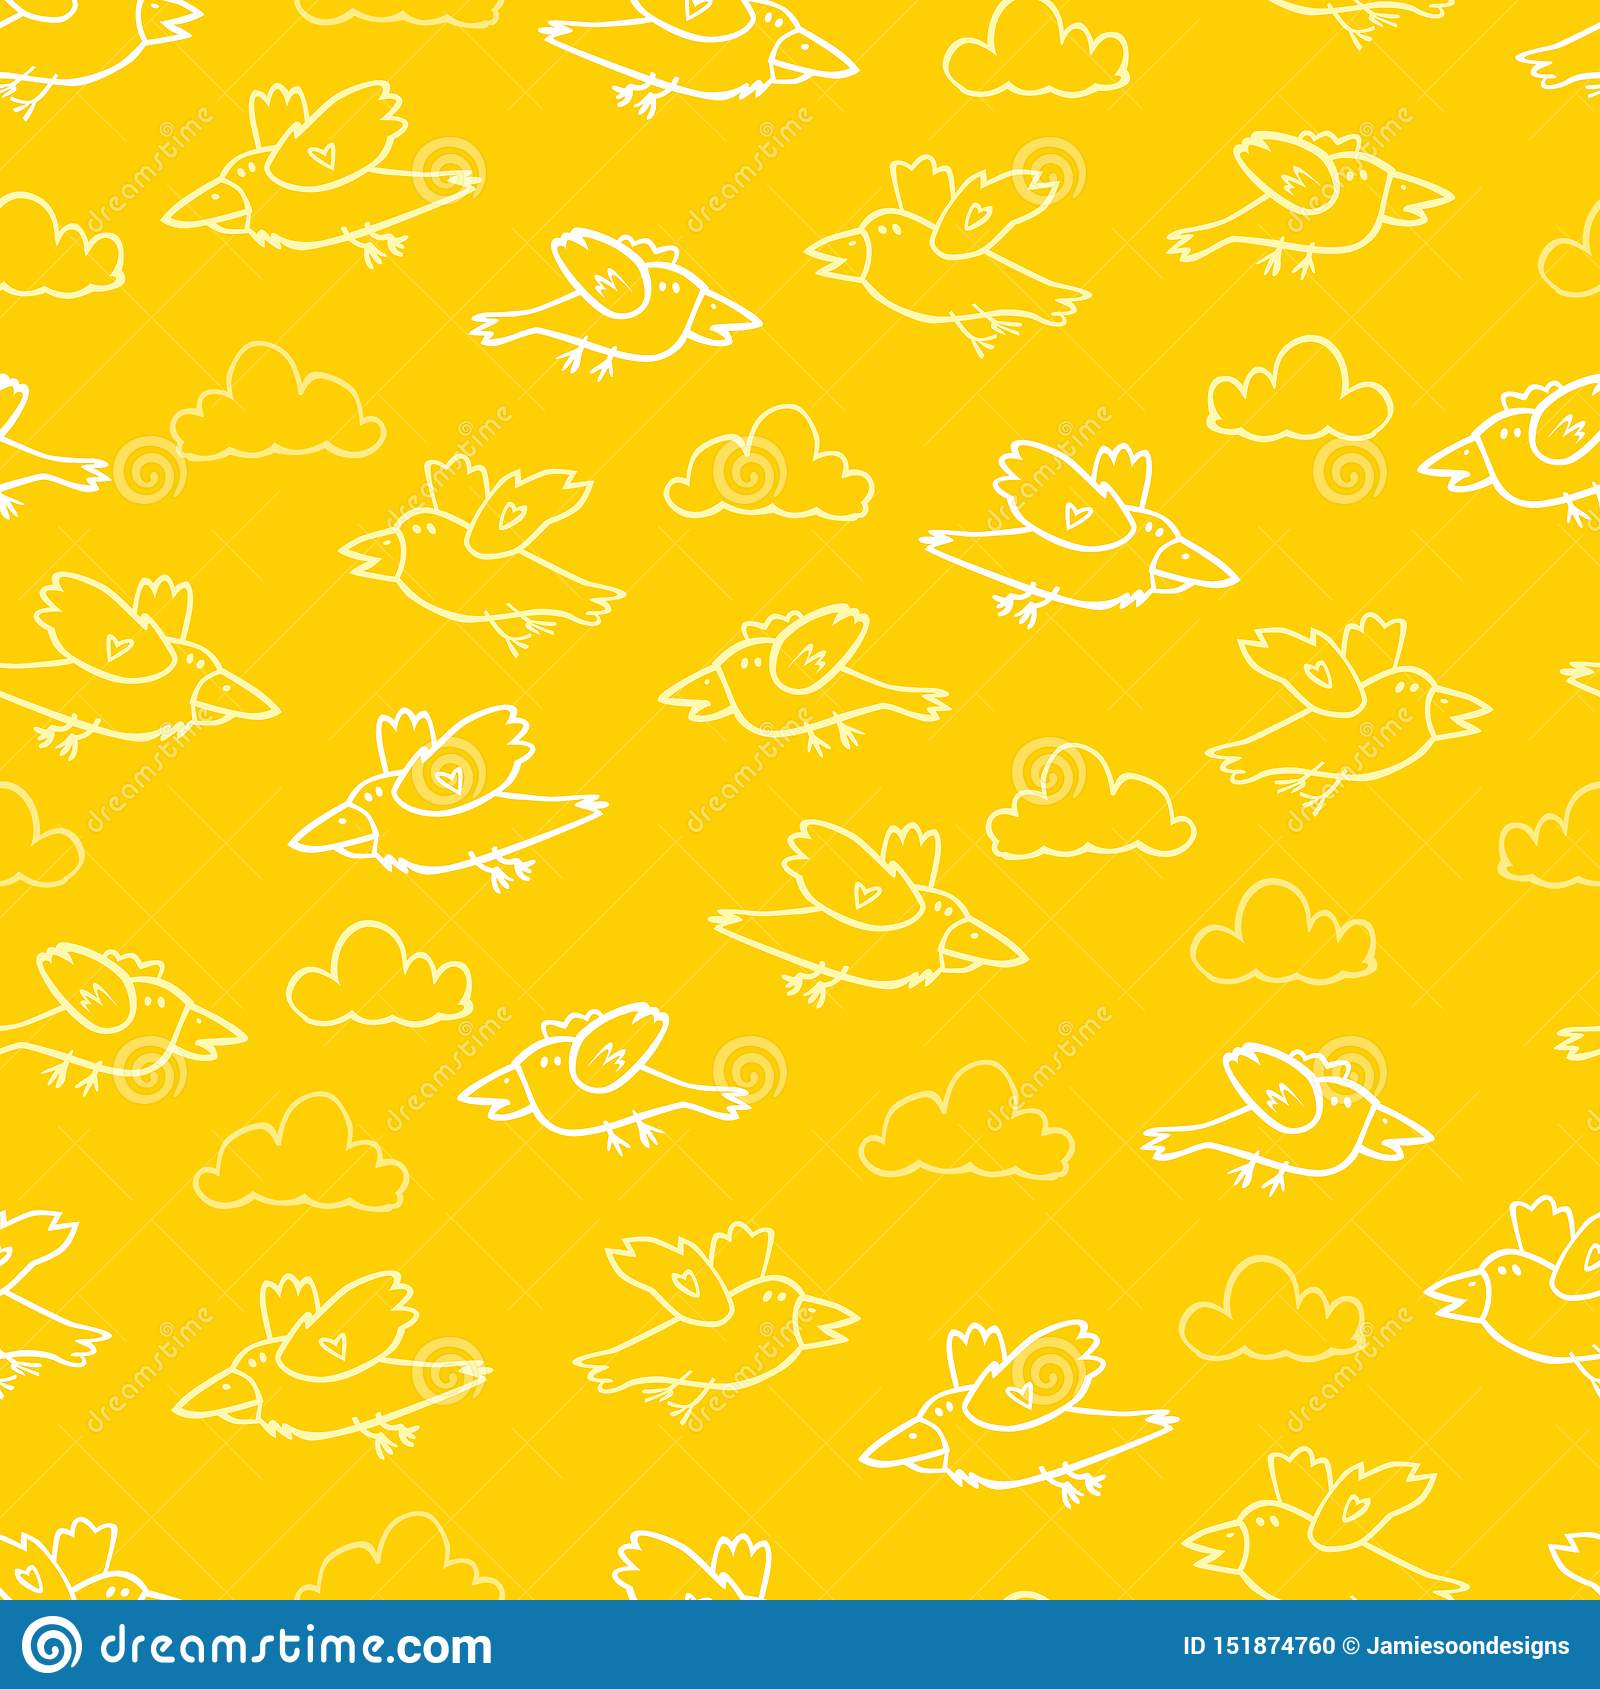 Vector yellow cartoon birds repeat pattern. Suitable for gift wrap, textile and wallpaper